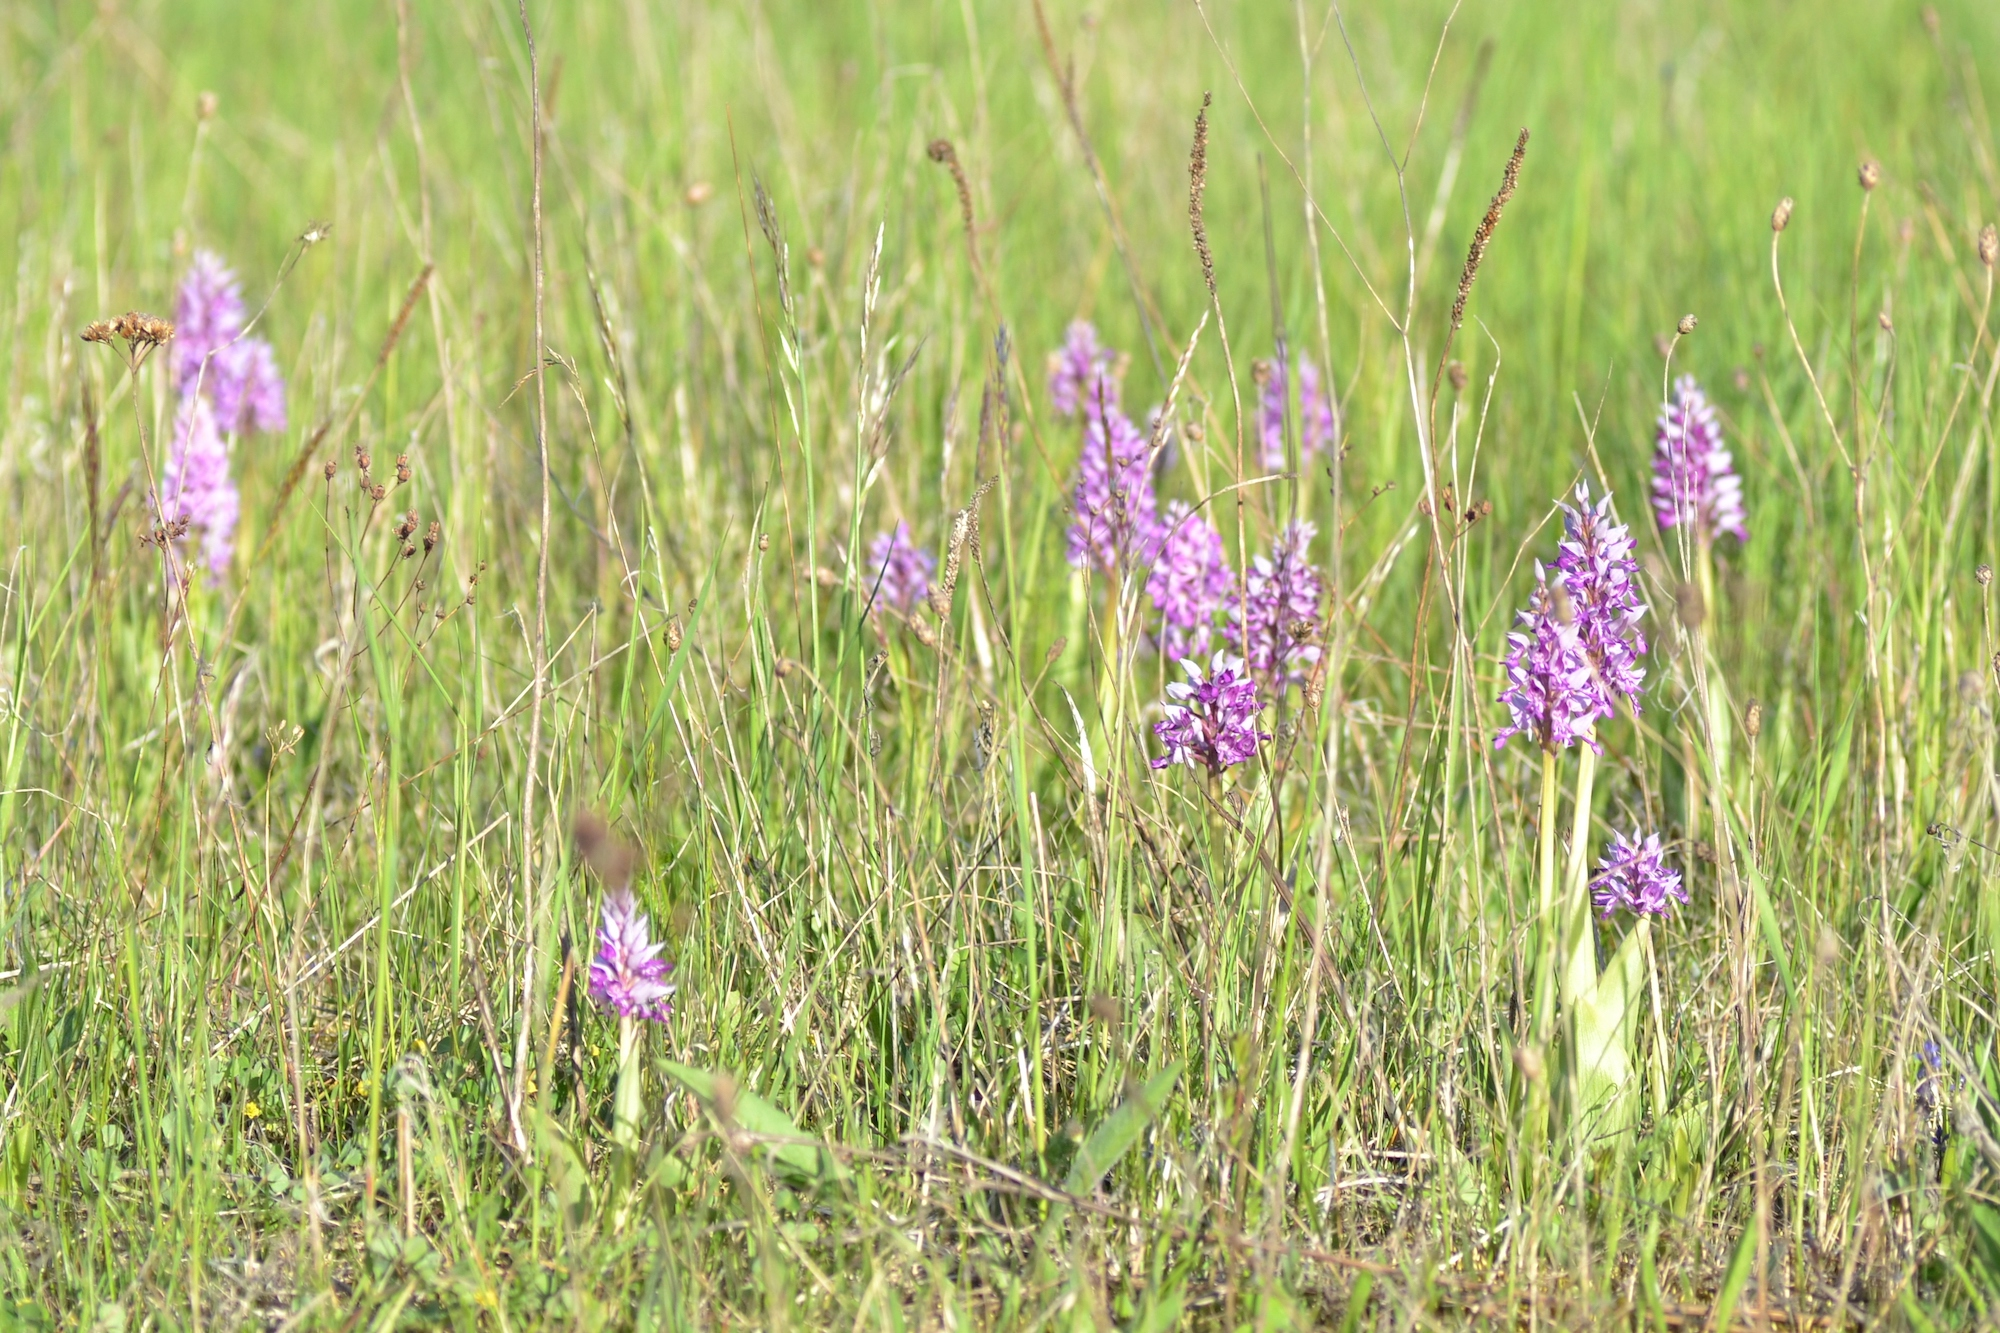 Orchids in Saaremaa are one of the reasons why nature tourist travel to Saaremaa in spring and in summer